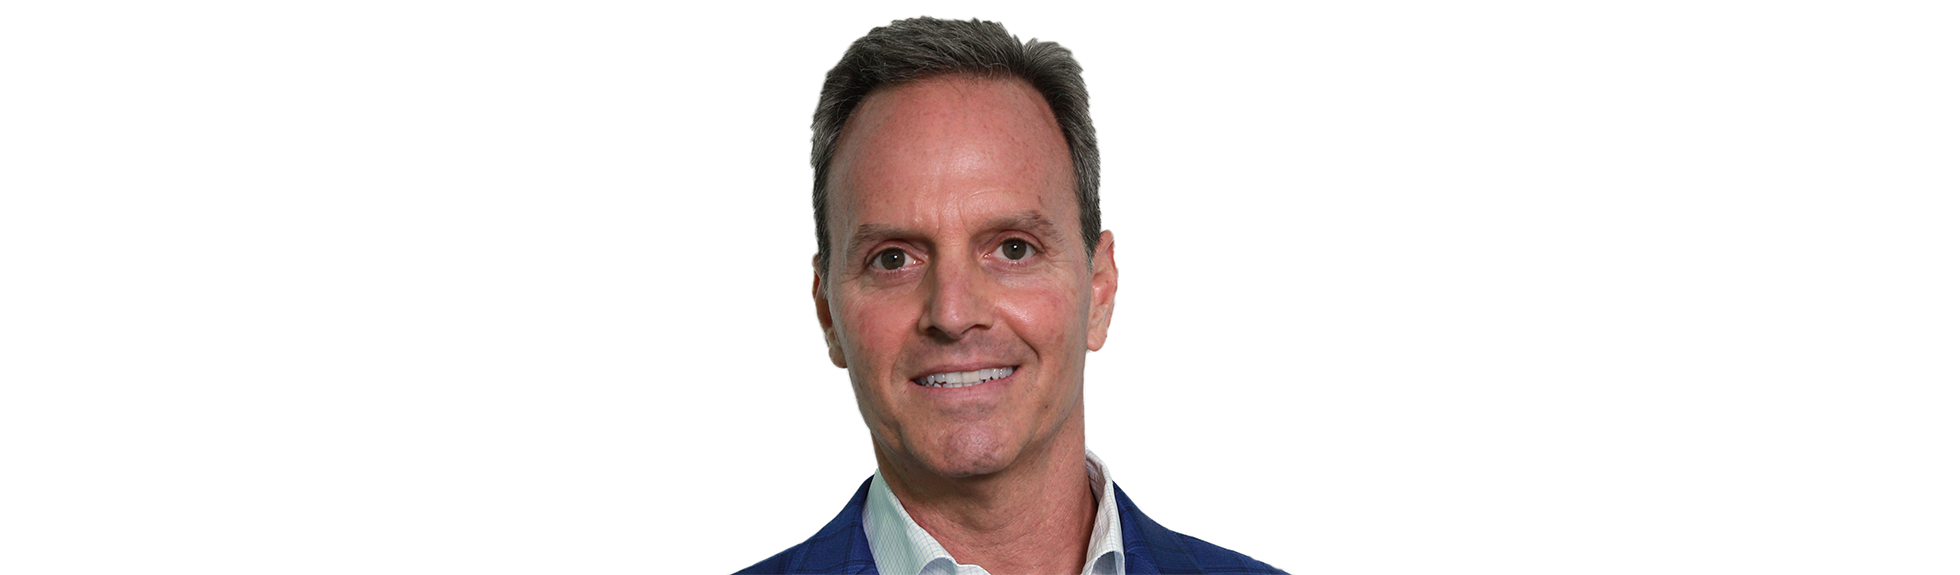 """Headshot of Executive Vice President and President, North America - Glen Walter with a biography underneath: """"Glen Walter became EVP and President, North America for Mondelēz International, November 2017. In this role, based in East Hanover, N.J., he will be responsible for leading the company's $7 billion business in the United States and Canada, which includes Power Brands such as Oreo and belVita biscuits; Triscuit and Good Thins crackers, Trident gum and Halls cough drops.  Glen previously held a position at the Coca-Cola Company, where he had worked since 2008. Most recently, Glen served as CEO of Coca-Cola Industries China, where he led his team to accelerate revenue growth, improve productivity and expand routes to market. Before that, he was President and Chief Operating Officer for Coca-Cola in North America, with 70,000 employees and annual revenues of $22 billion. In this role, he was a key contributor to the delivery of multiple consecutive quarters of market share growth and operating income expansion.  Prior to his time at Coca-Cola, Walter served as President of InBevUSA in addition to various general management and M&A roles within InBev and Interbrew, including leading the integration of Bass Ale and Beck's. Earlier, Walter served as General Manager at Pearce Beverage Company and started his career in sales and marketing at EJ Gallo Winery, Inc.  Glen is an active member of his community and serves on the Board of Governors for the Boys and Girls Clubs of America. He earned a bachelor's degree in international business and economics from Boston University. In addition, he attended the Executive Leadership Program at INSEAD and Wharton."""""""